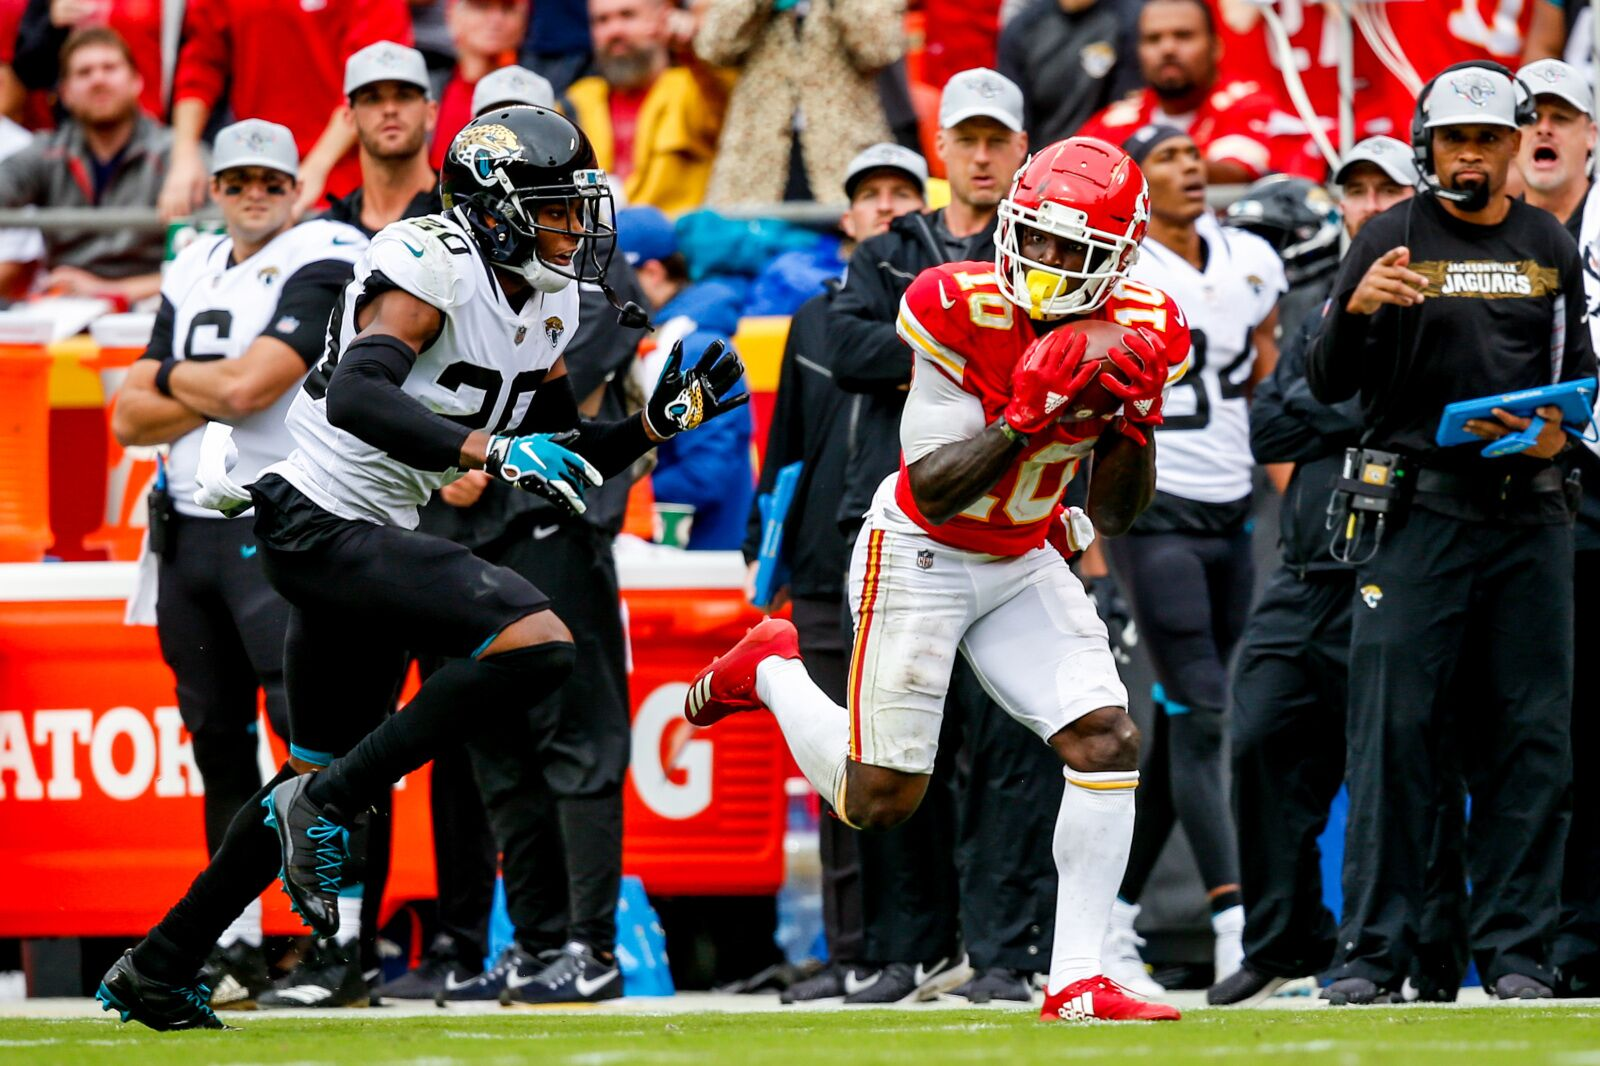 Chiefs v. Jaguars: Can Nick Foles lead Jacksonville to victory?